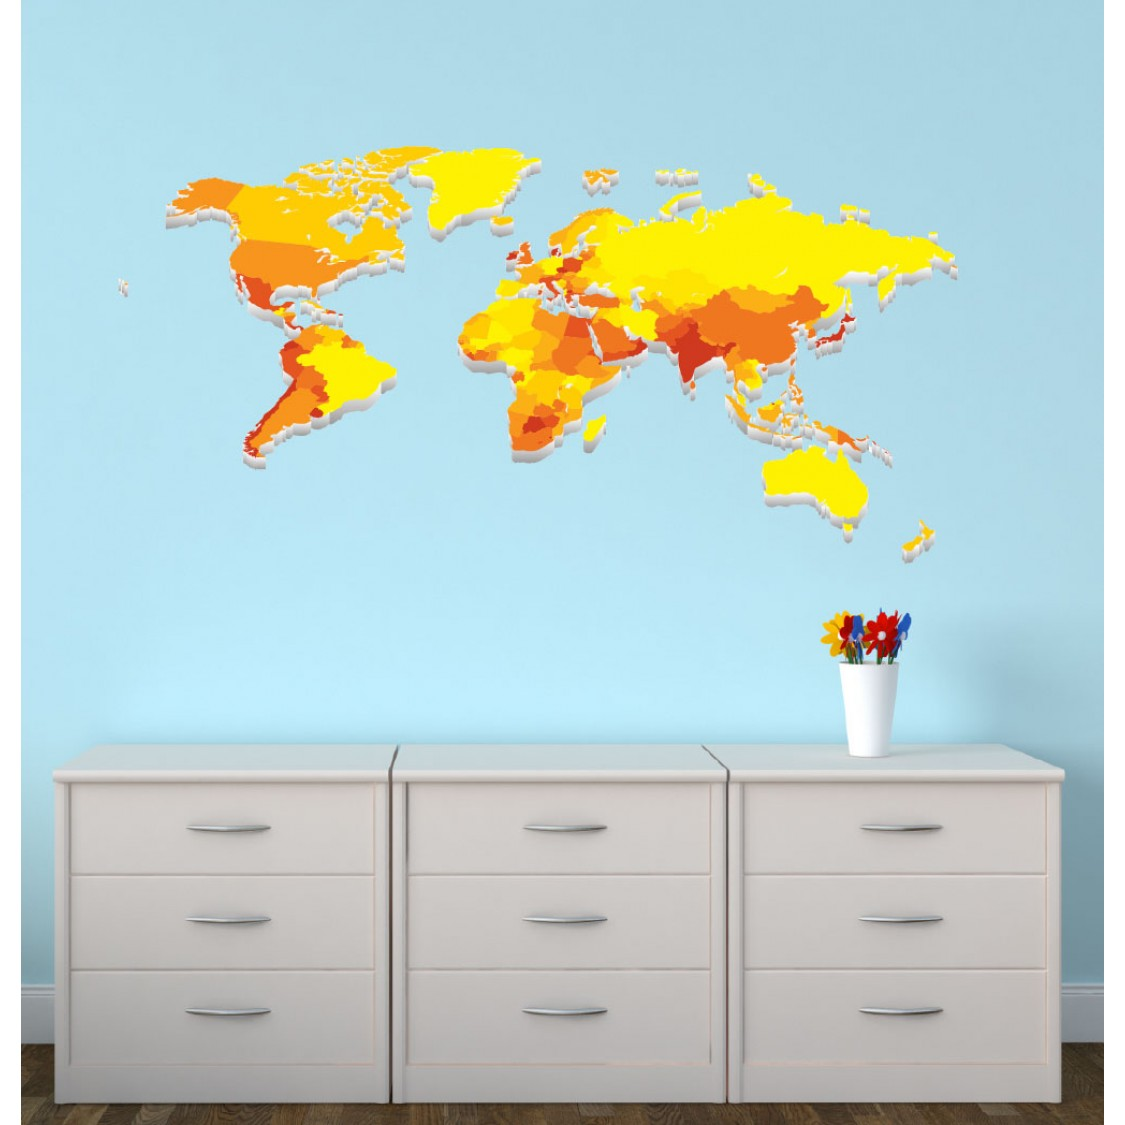 Kids Wall Stickers For Bedrooms With World Map Wall Decals For Kids Rooms